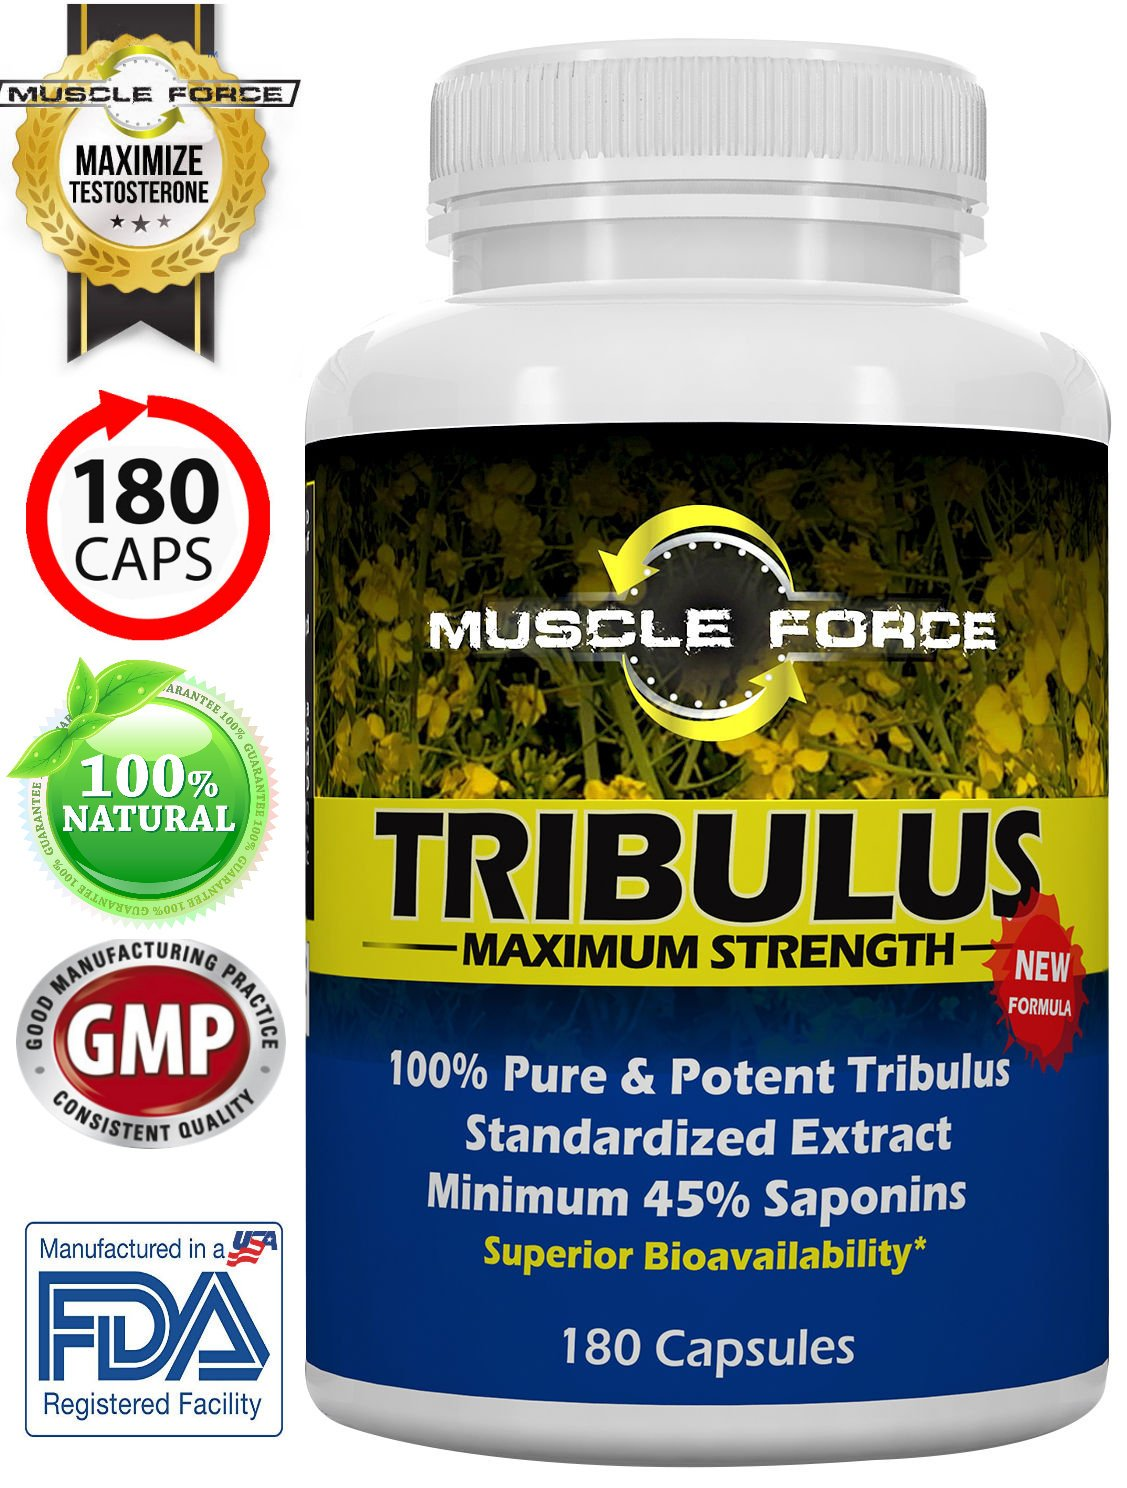 #1 Rated Muscle Force Tribulus Terrestris | 180 Capsules | 1500mg of Bulgarian Tribulus | 45% Saponins | NEW BIOAVAILABILITY FACTOR | 3 MTH SUPPLY | Ships Free